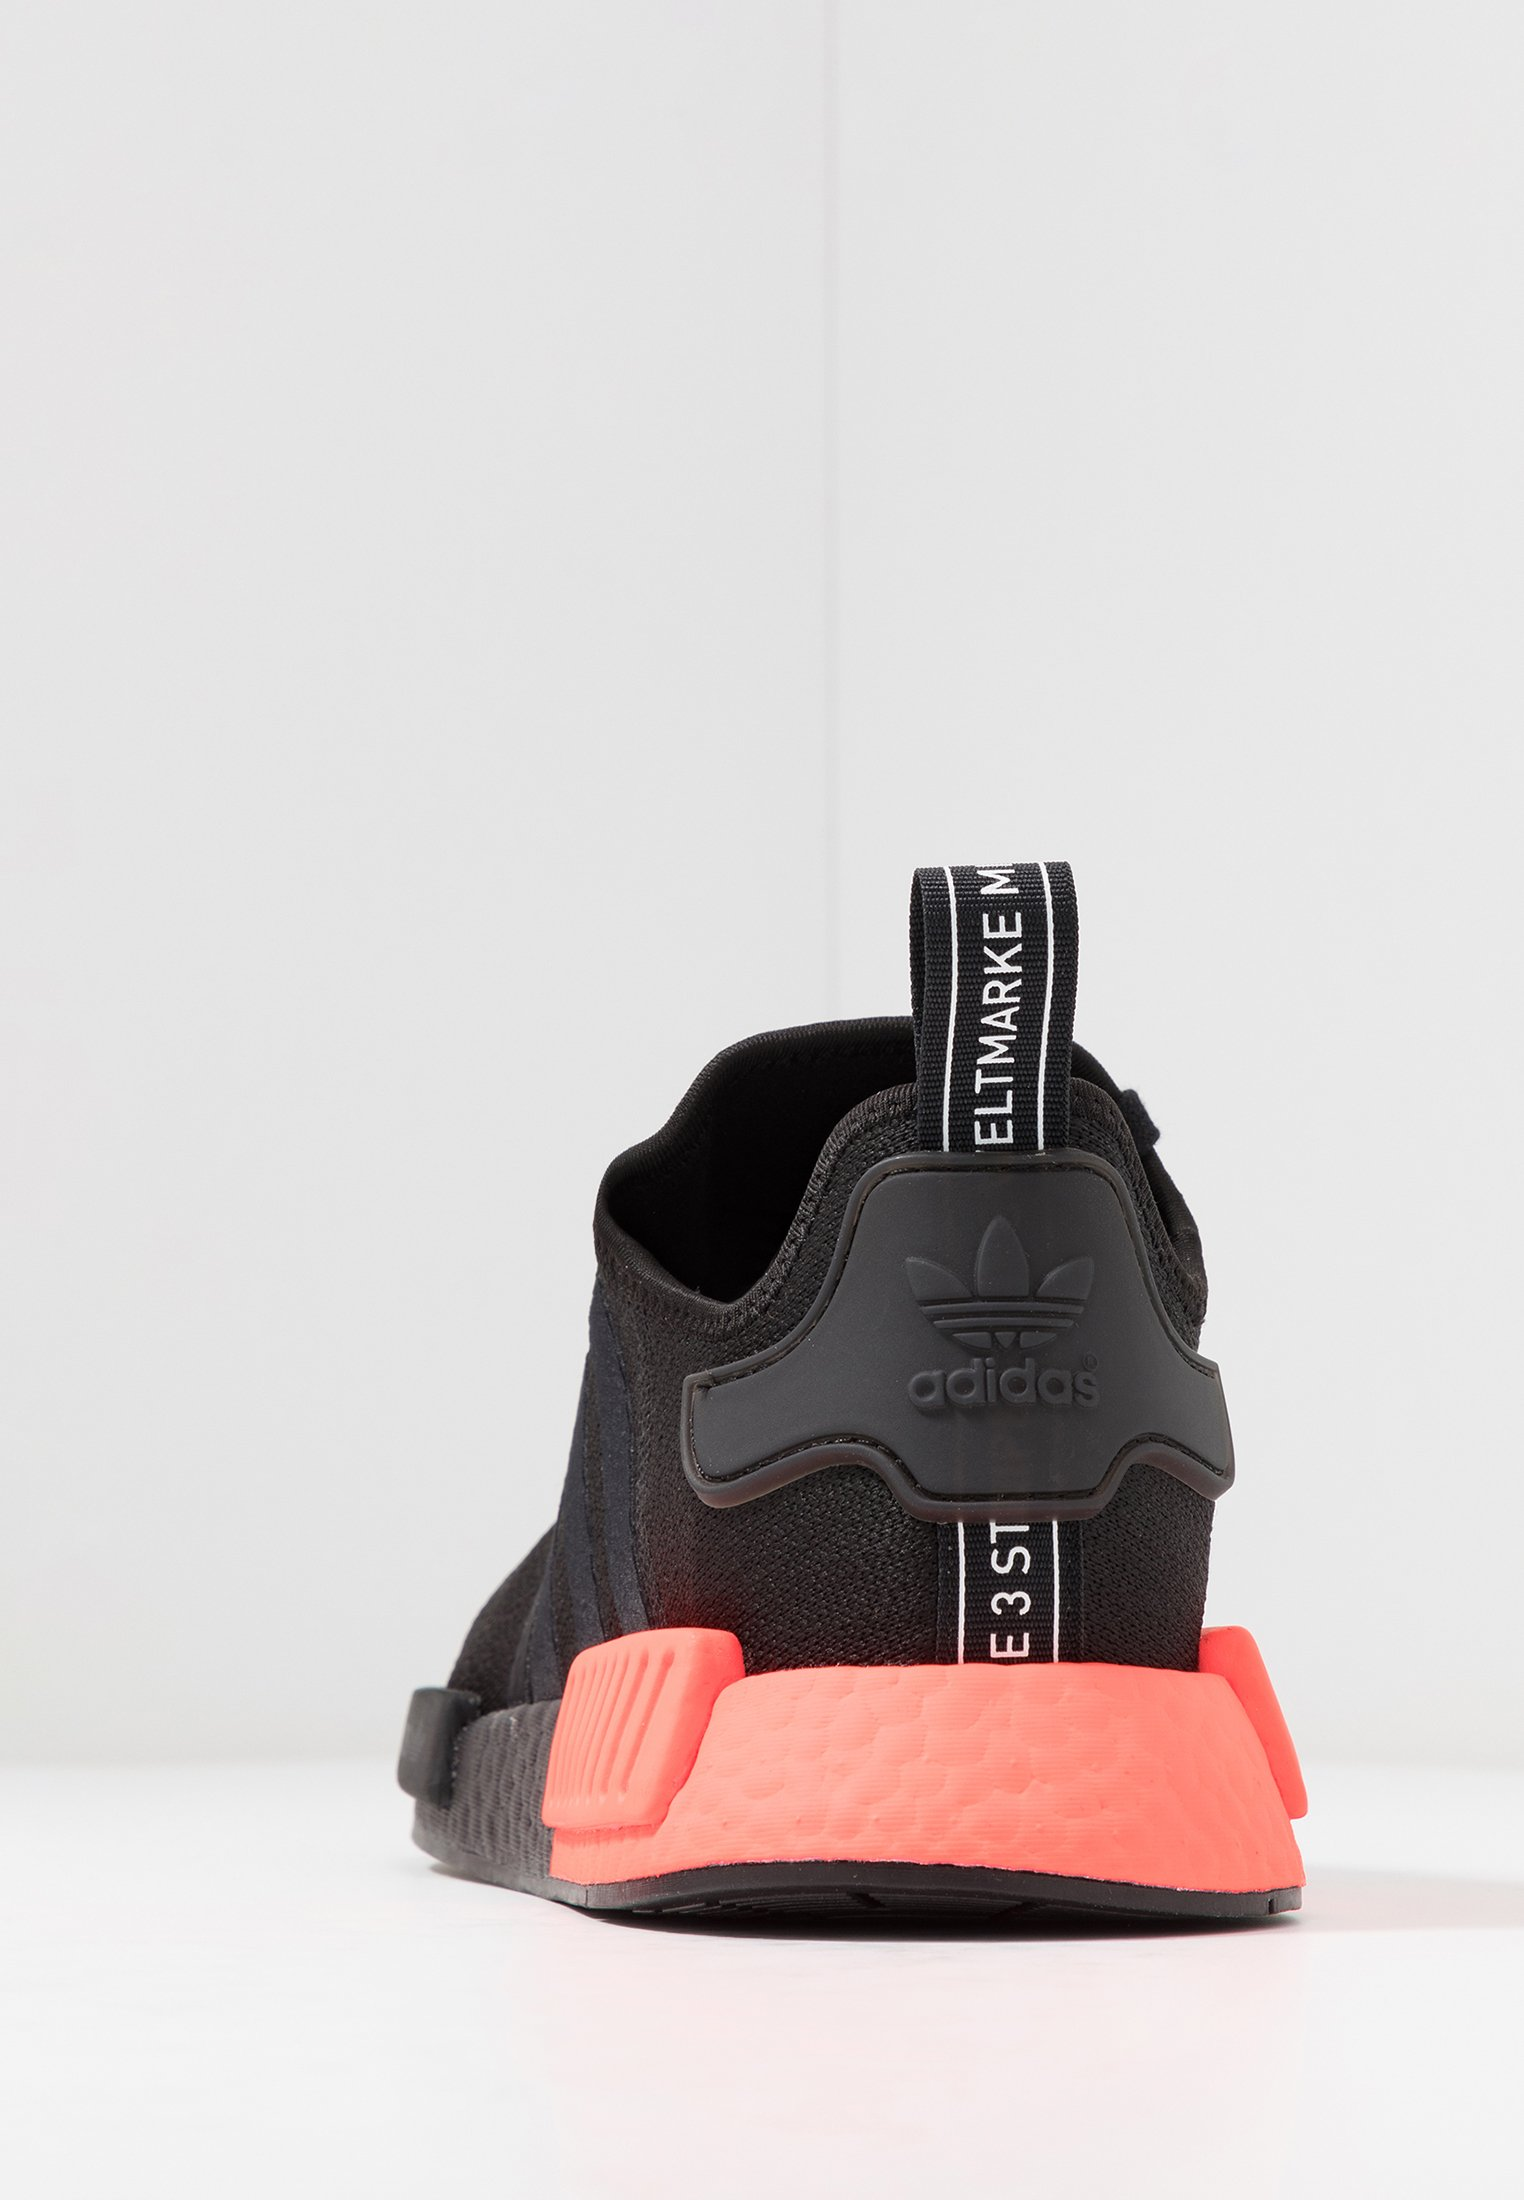 adidas Originals NMD_R1 Sneakers core blacksolar red